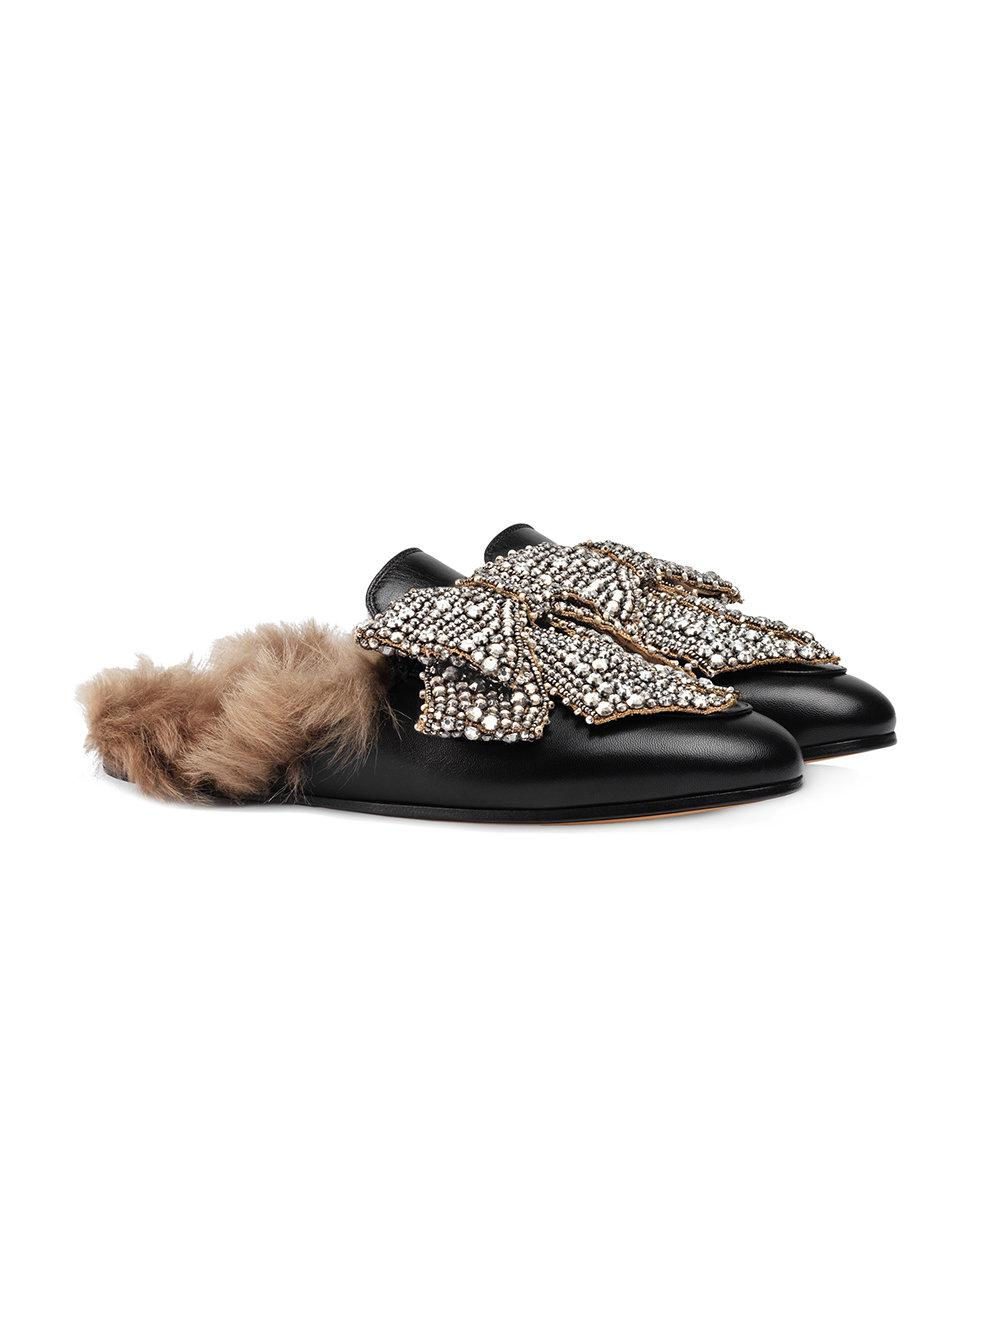 a36f1729077 Lyst - Gucci Crystal Bow Princetown Leather Mules in Black - Save 53%